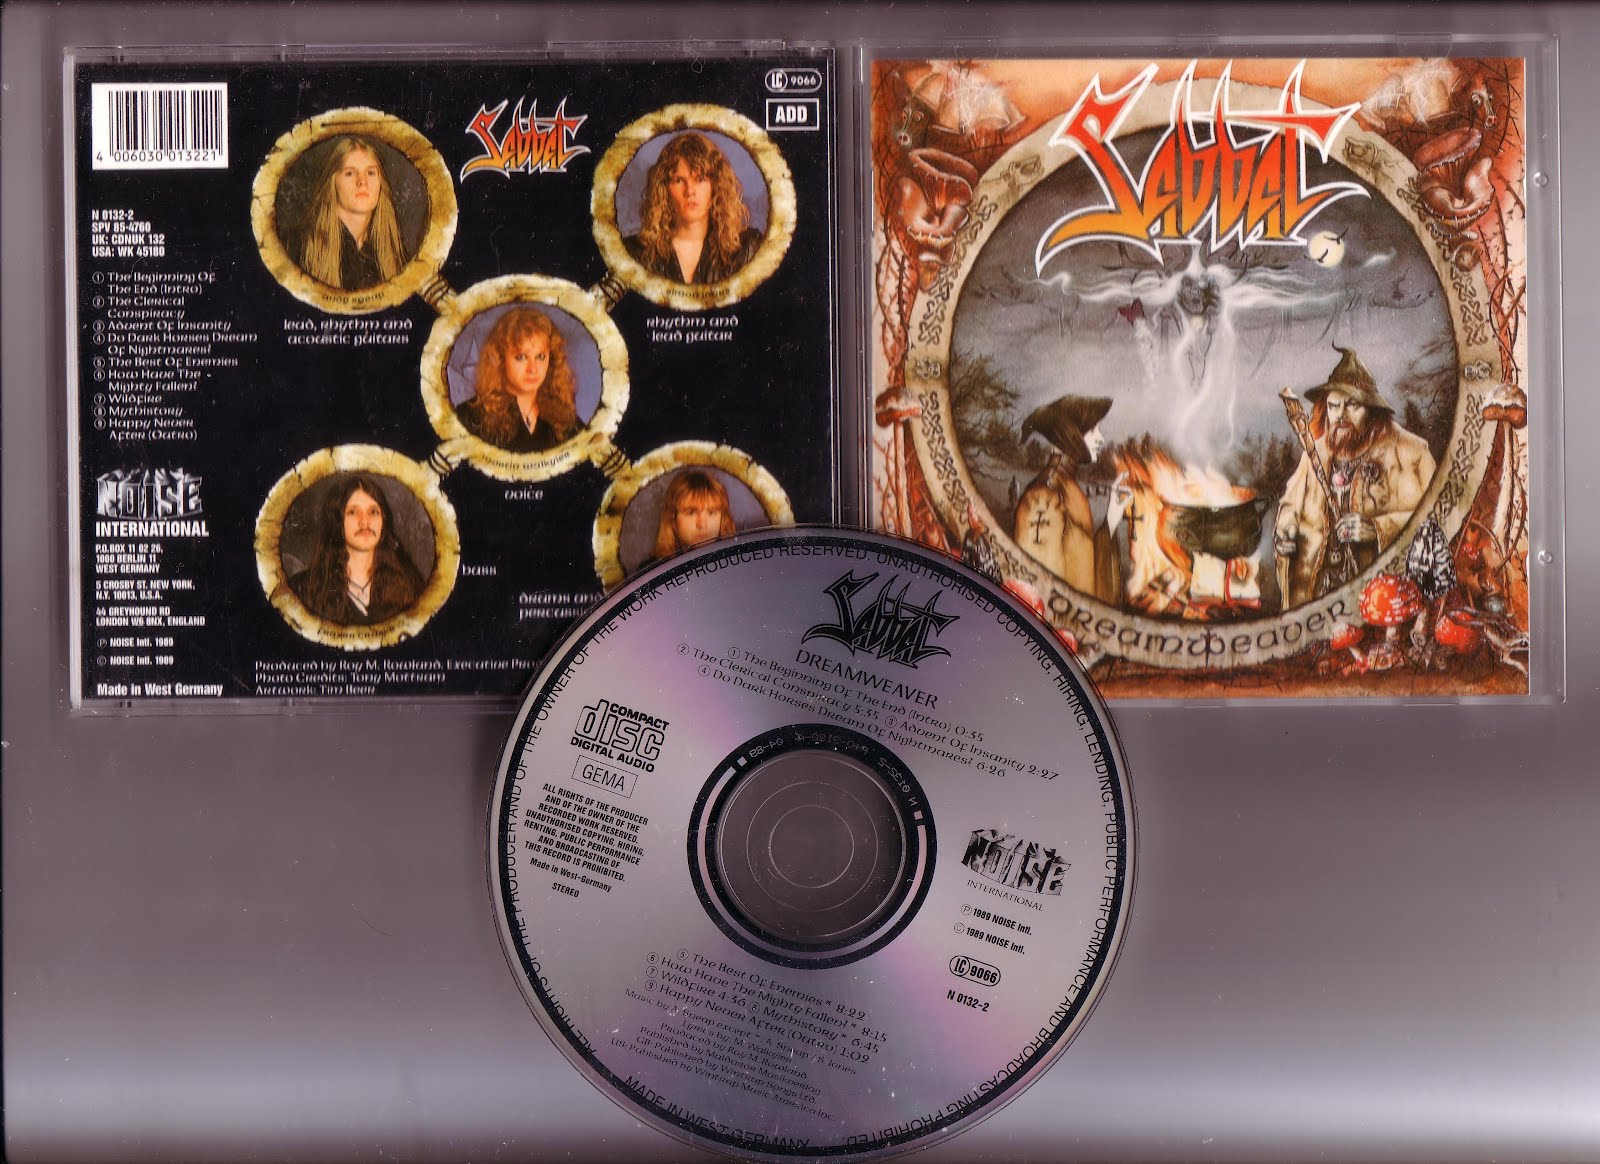 Sabbat - Dreamweaver (Reflections Of Our Yesterdays) - Expanded Edition